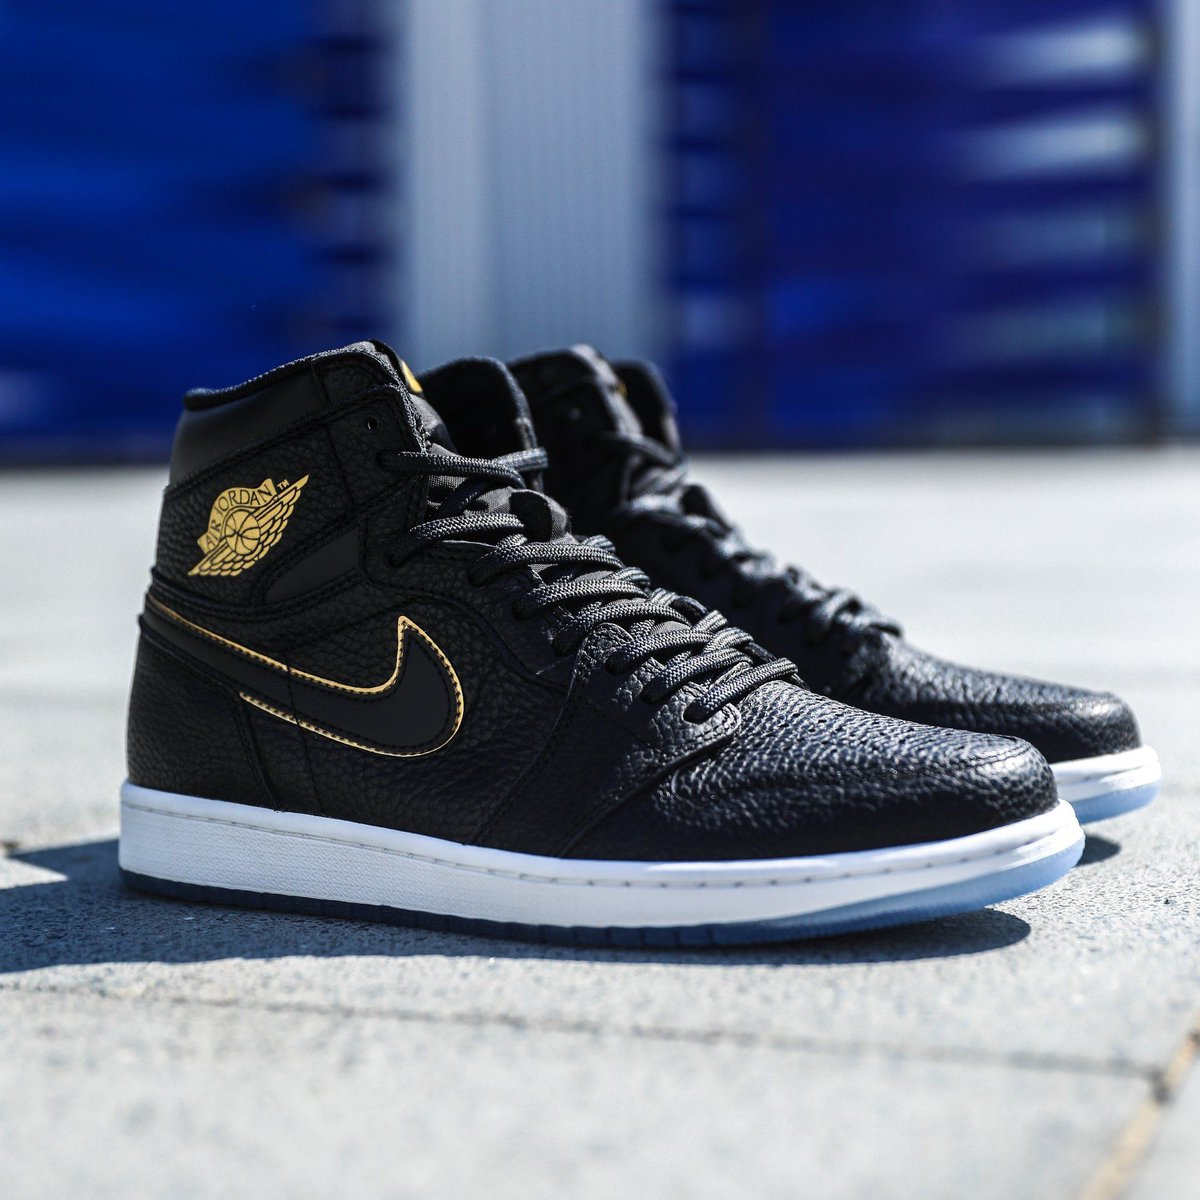 info for 7856c 92318 50% OFF + FREE shipping on the Air Jordan 1 High Retro